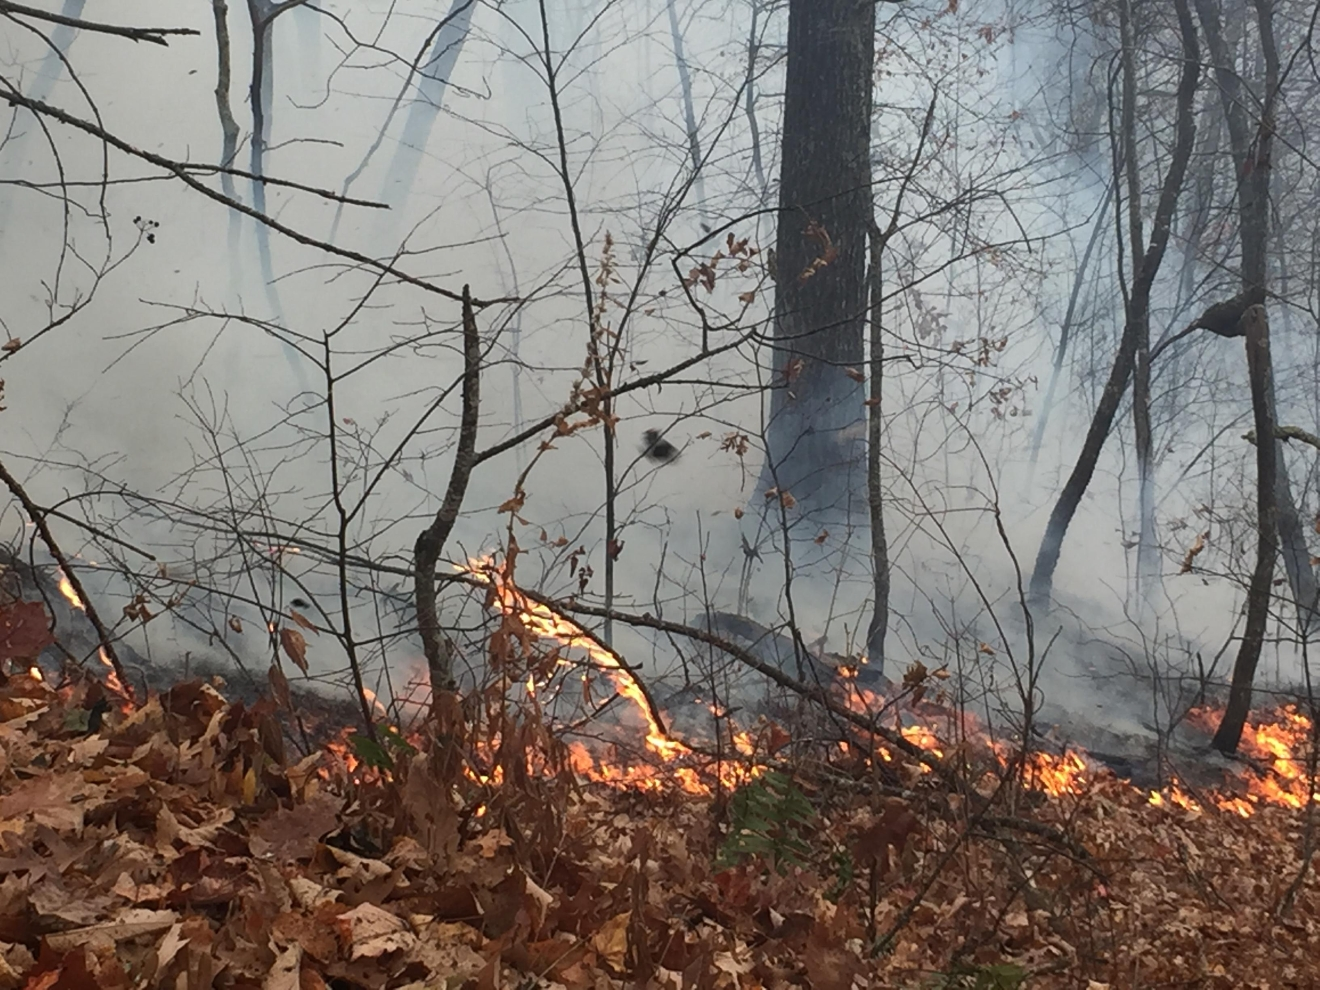 Crews are fighting a new wildfire that broke out overnight off Pisgah Highway, near Upper Hominy. (Photo credit: WLOS staff)